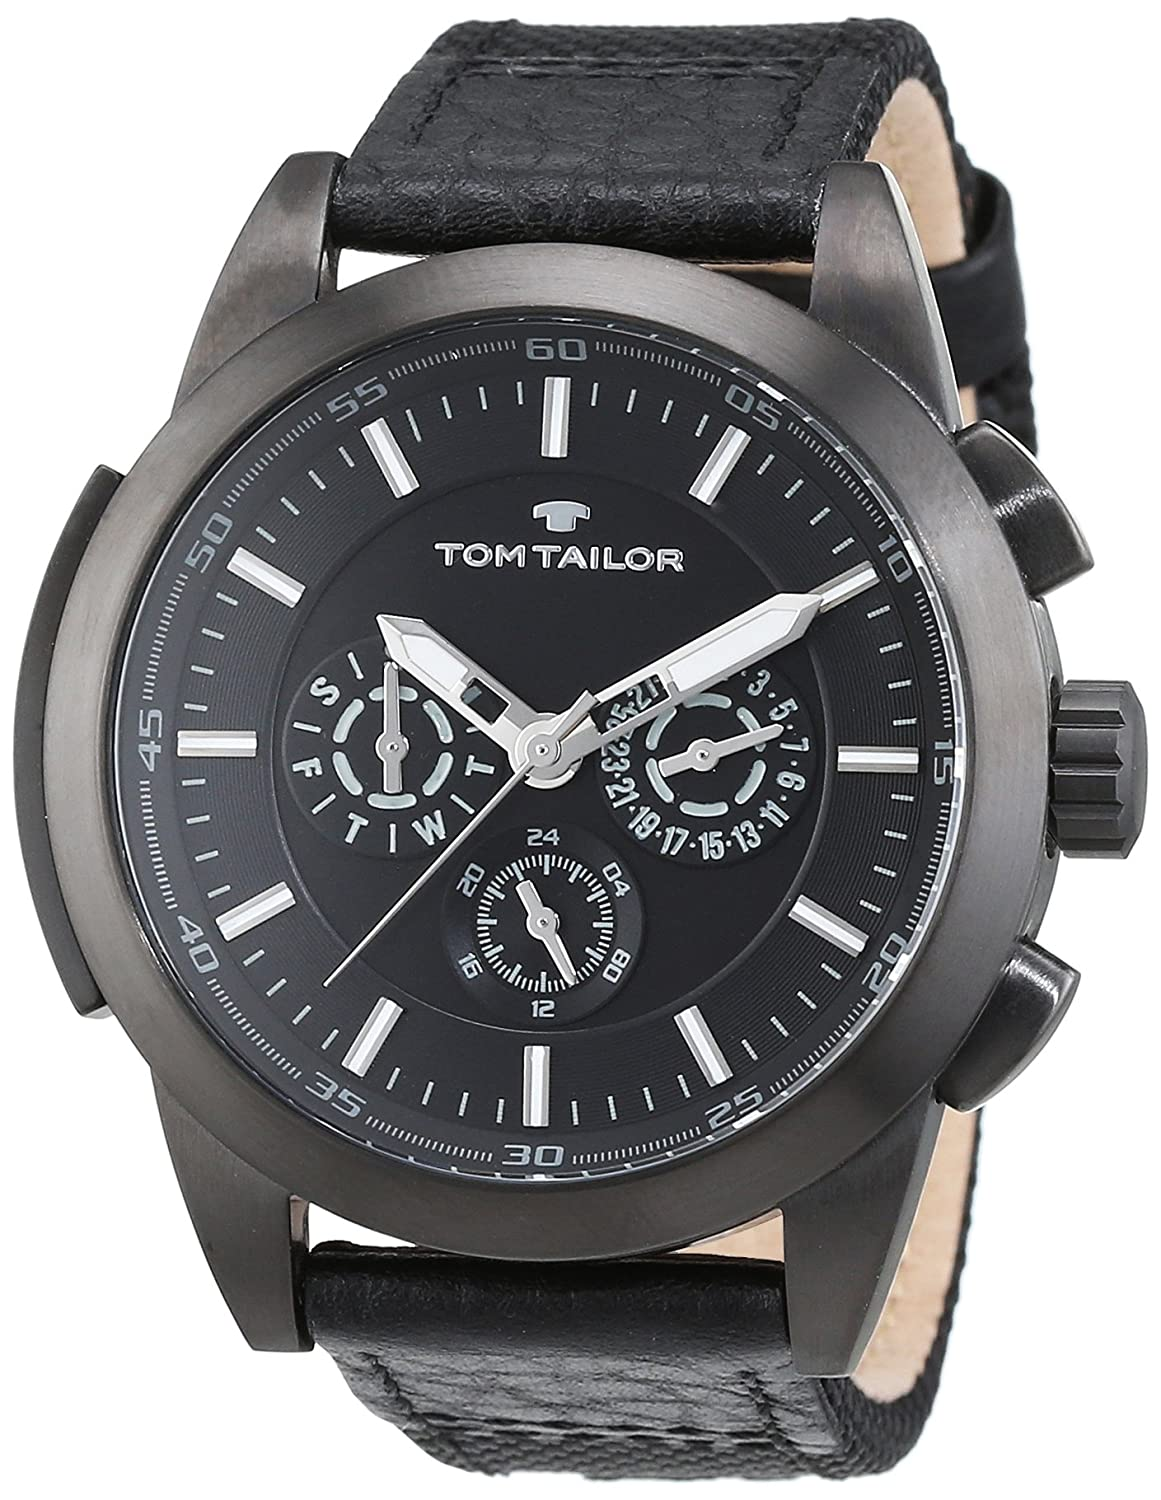 TOM TAILOR Watches Herren-Armbanduhr Analog Quarz verschiedene Materialien 5414901